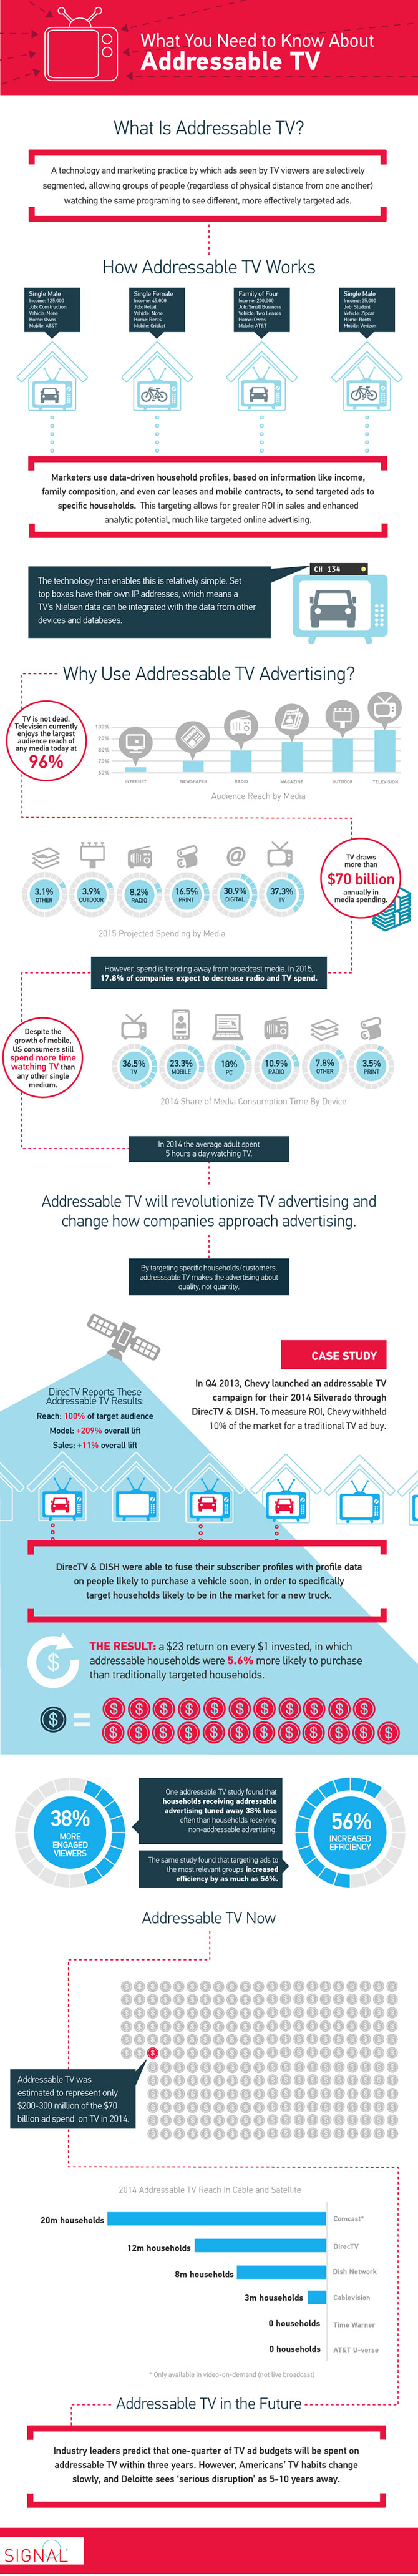 TV-Marketing-Infographics.jpg